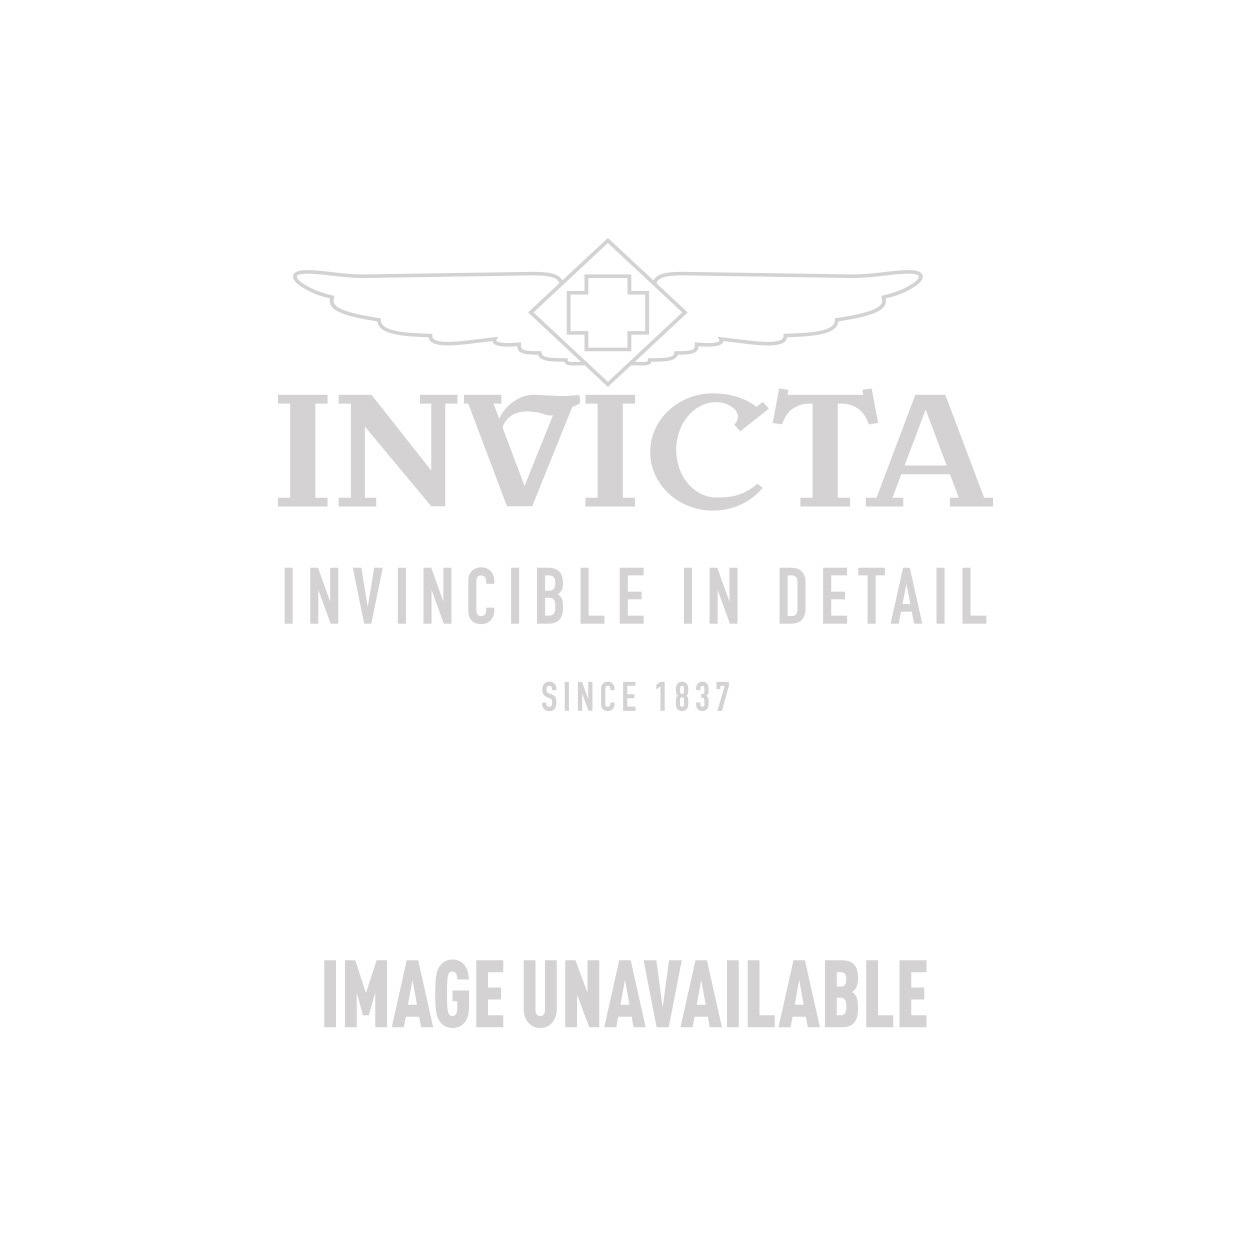 Invicta Sea Base Swiss Made Quartz Watch - Rose Gold, Stainless Steel case with Steel, Rose Gold tone Stainless Steel band - Model 17992